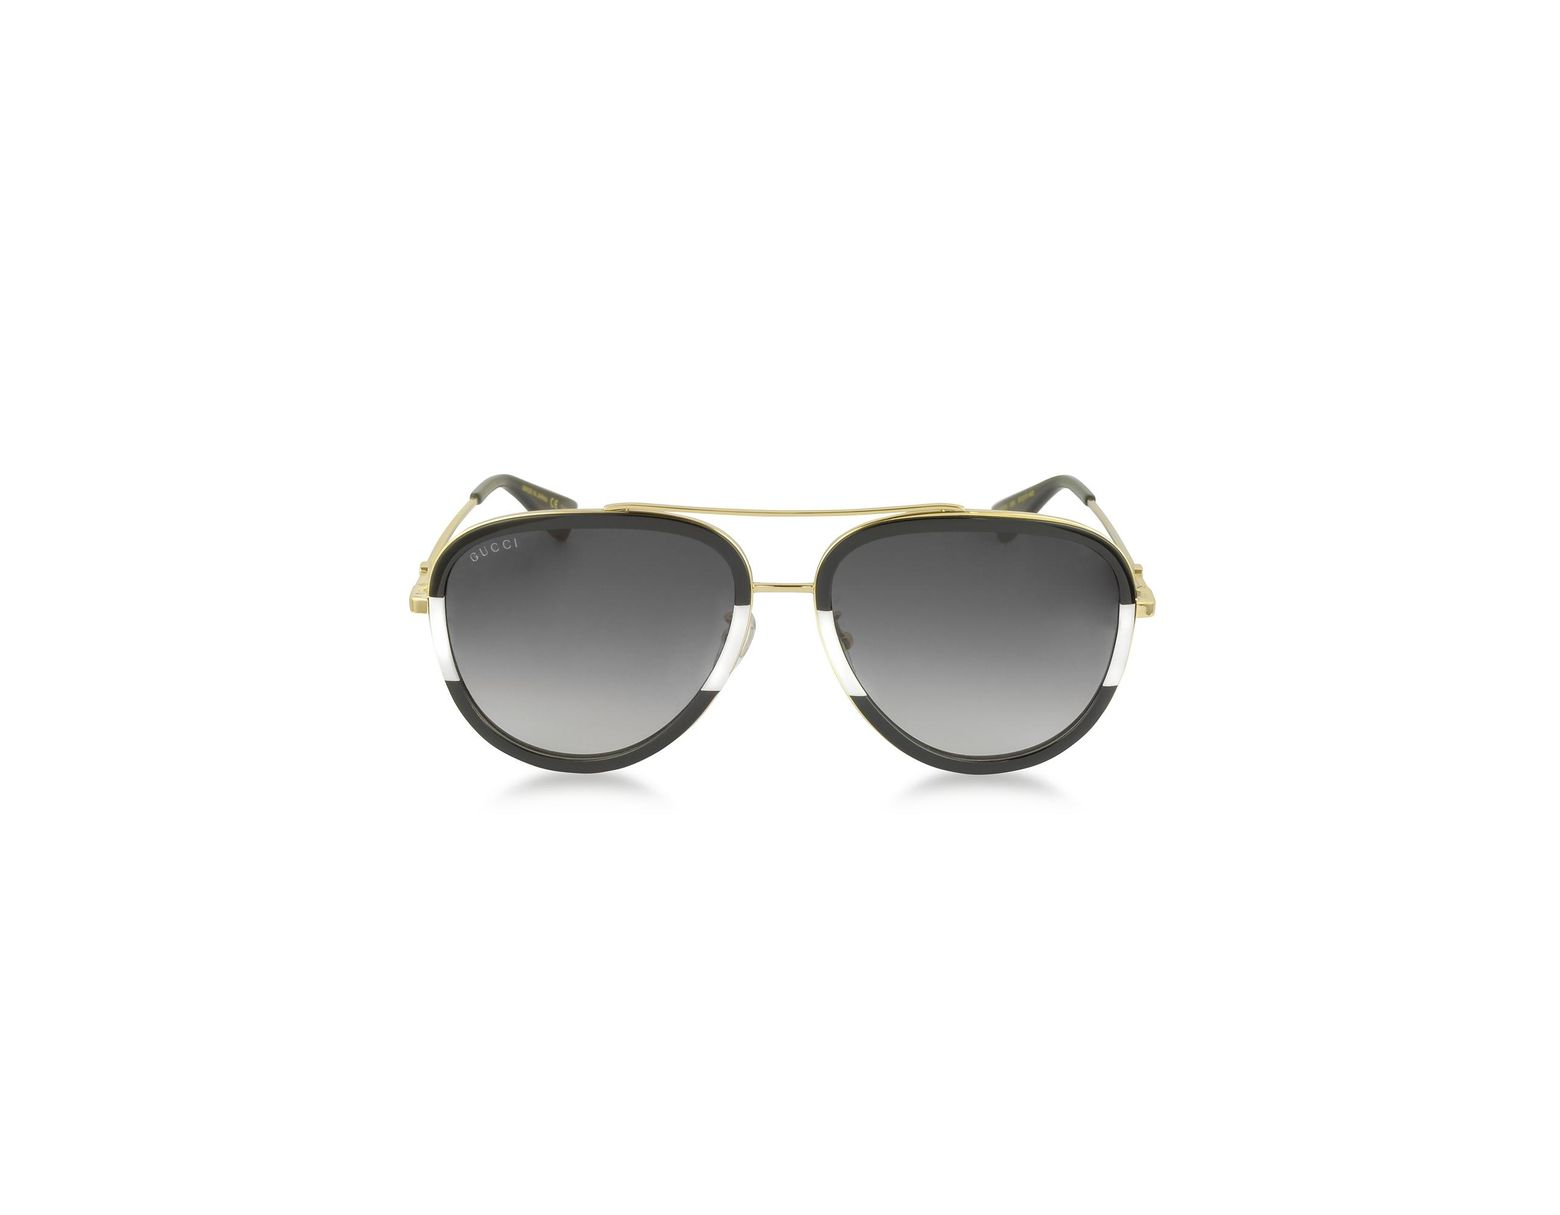 df78c09f719 Lyst - Gucci GG0062S 006 Black white Acetate And Gold Metal Aviator Women s  Sunglasses in Metallic